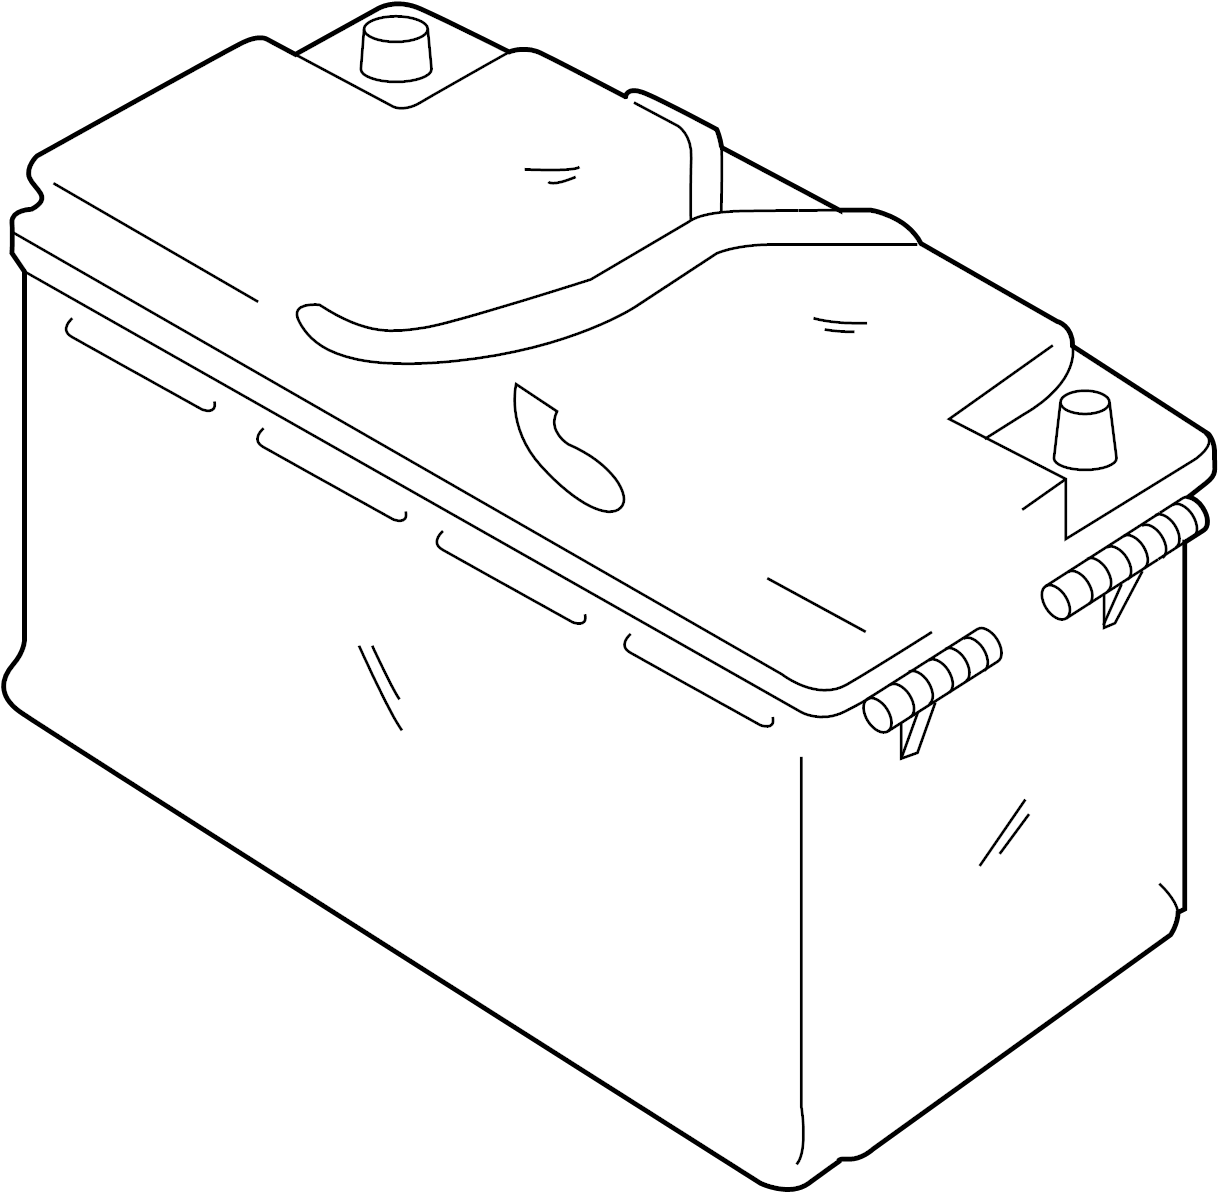 Jaguar S Type Battery Part Located On The Spare Wheel Well Power Source